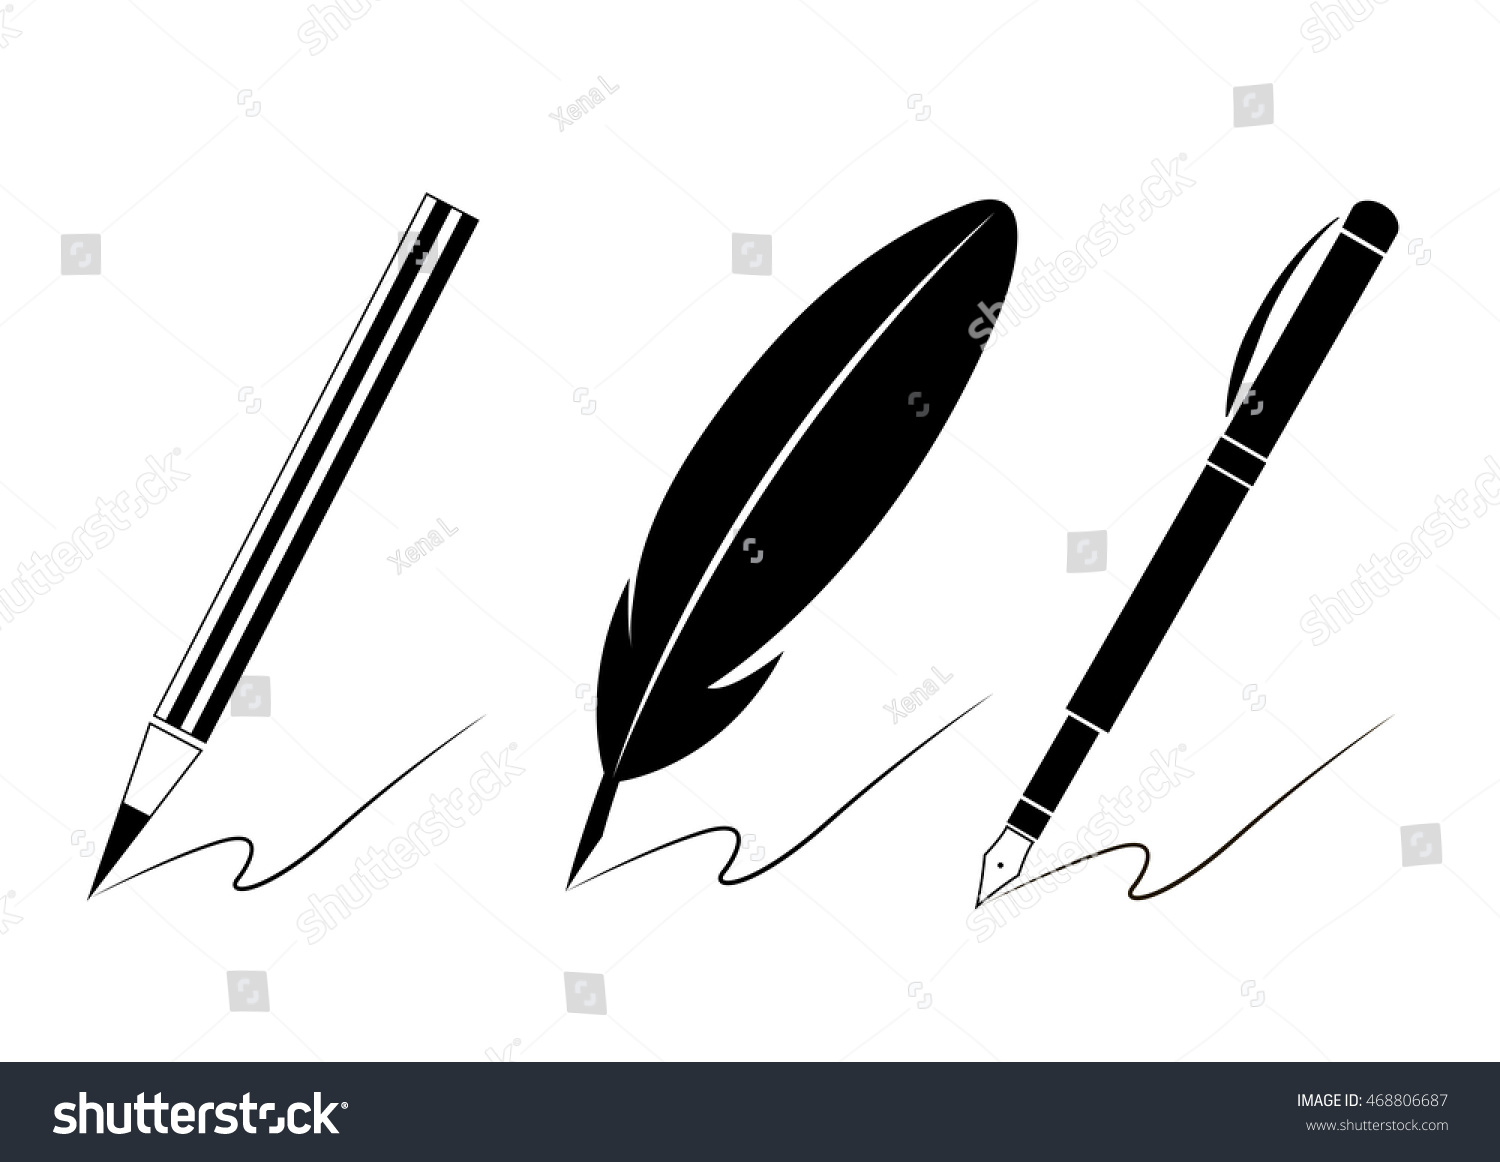 Set pen icons writing materials symbols stock vector 468806687 set of pen icons writing materials symbols for your web site design logo biocorpaavc Choice Image